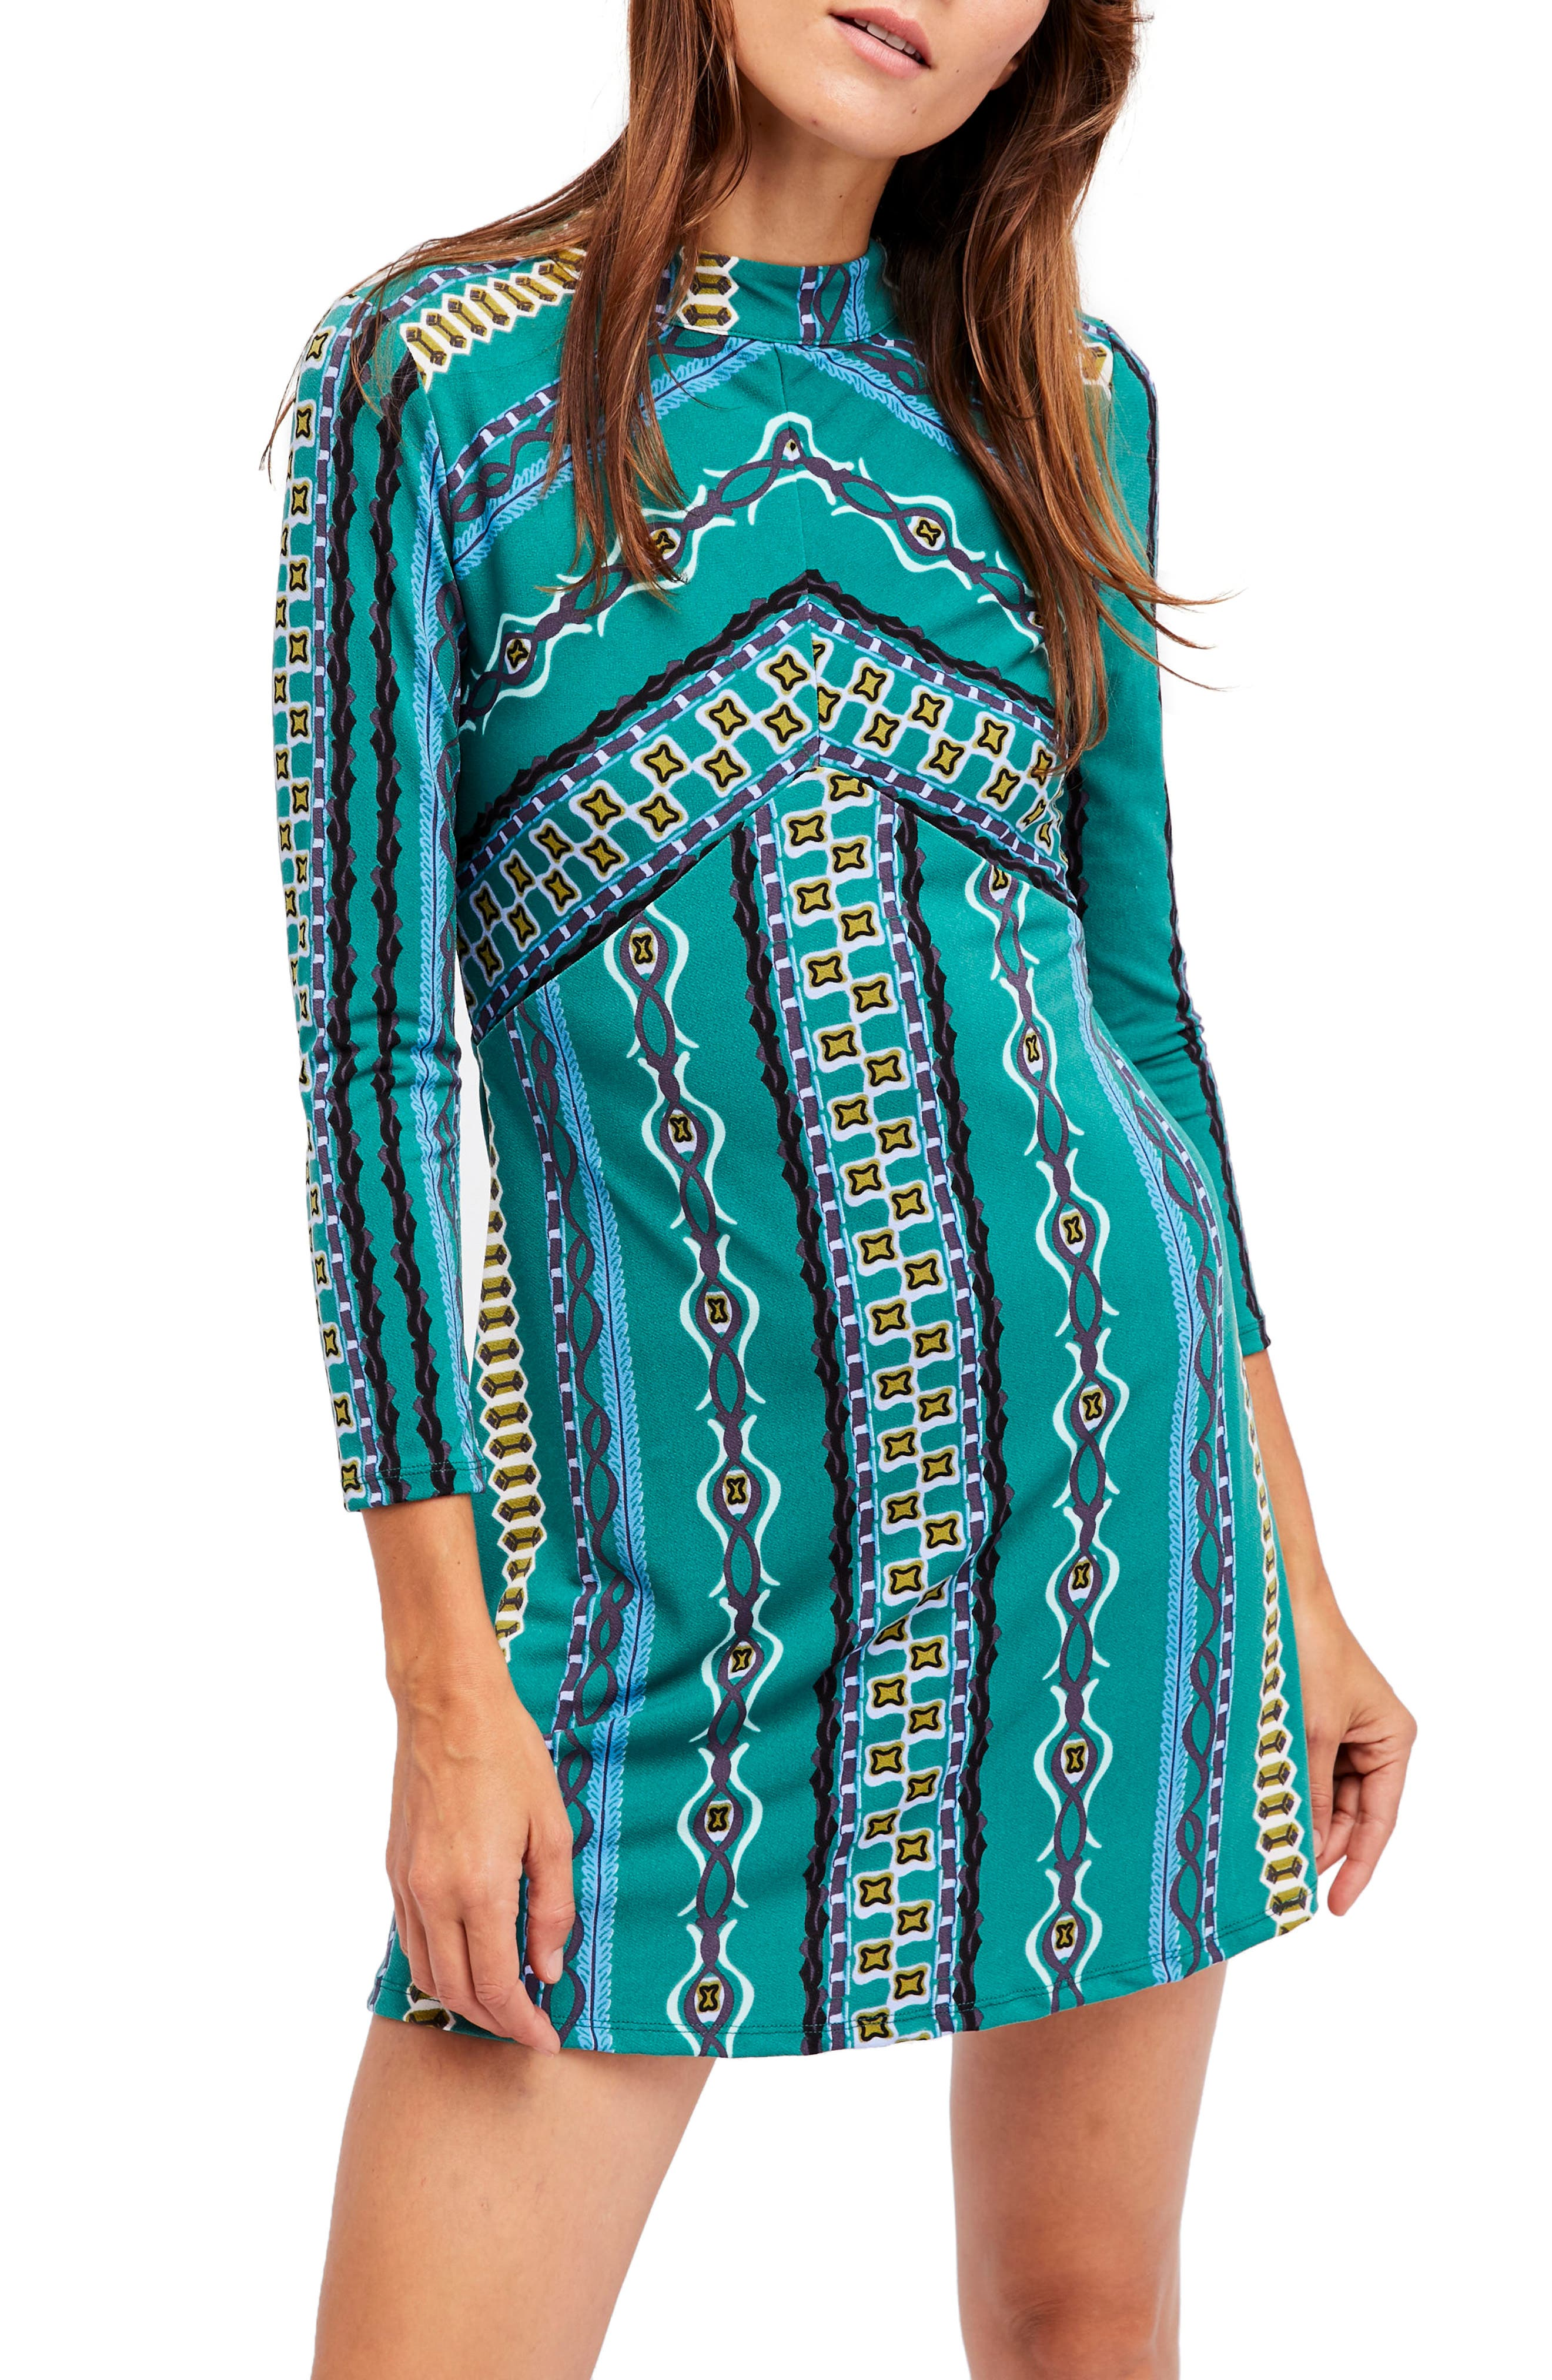 Alternate Image 1 Selected - Free People 'Stella' Graphic Print Minidress